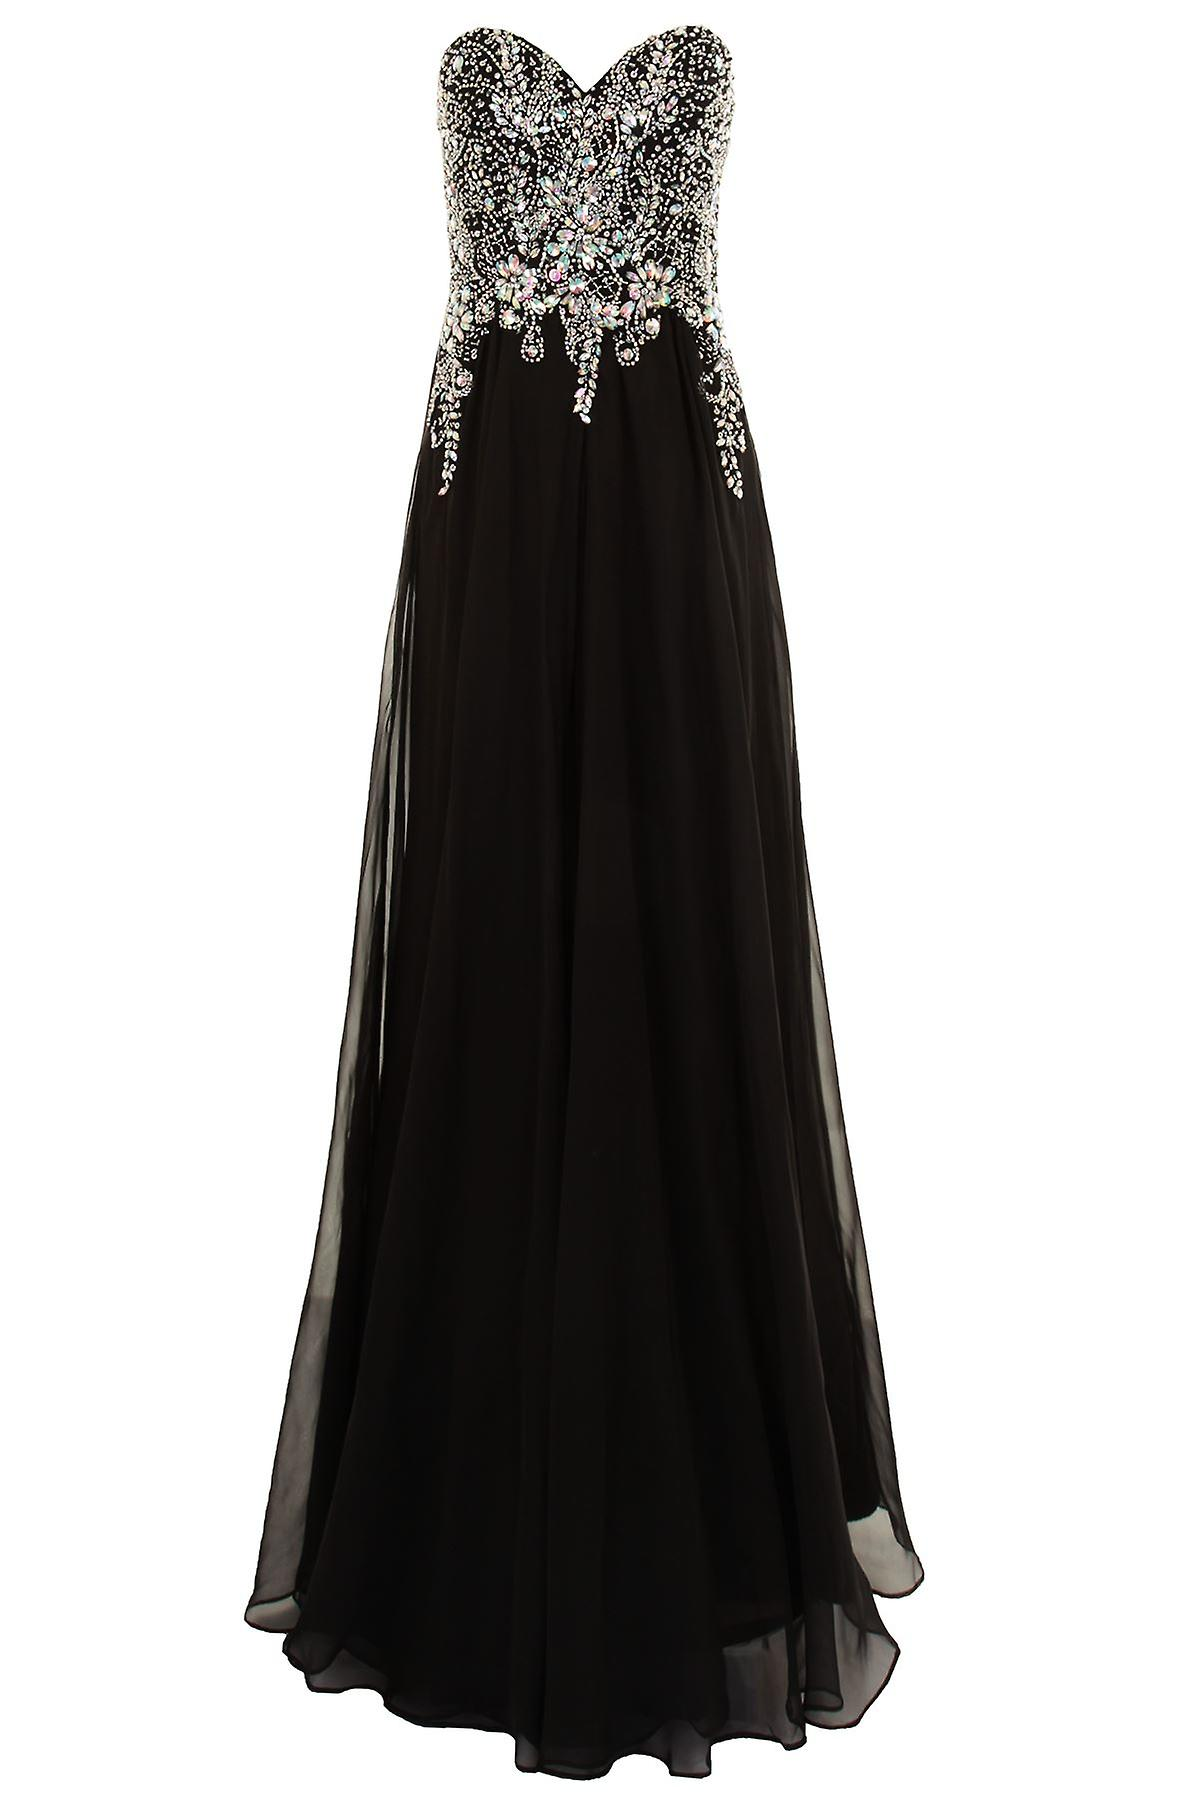 Long Formal Boobtube Jewelled Wedding Evening Party Prom Bridesmaid Dress